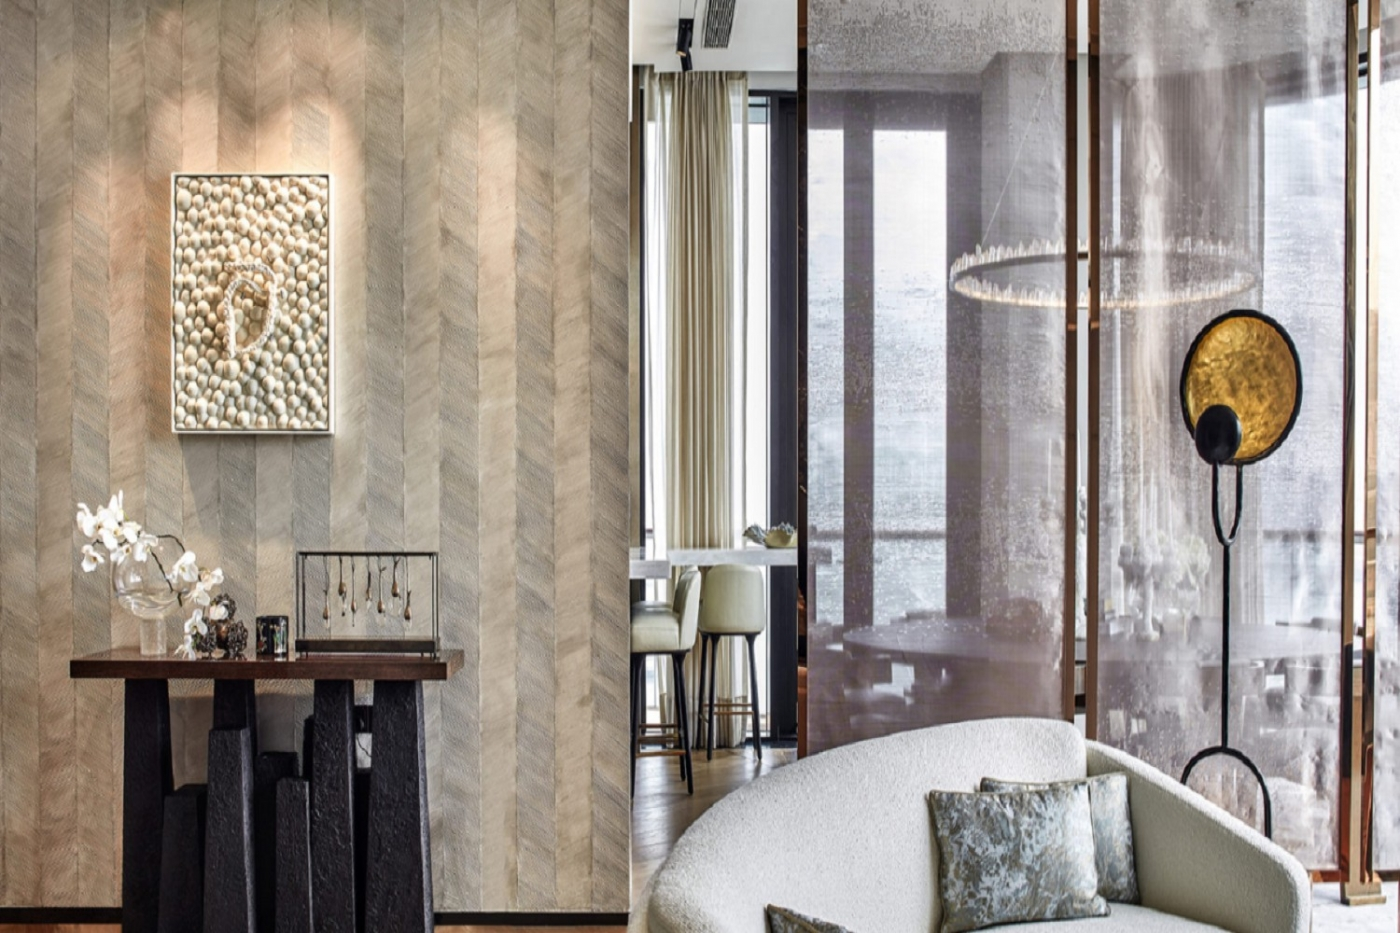 fiona barratt interiors fiona barratt interiors Fiona Barratt Interiors – The Ultimate Interior Design Experience ft 4 1400x933